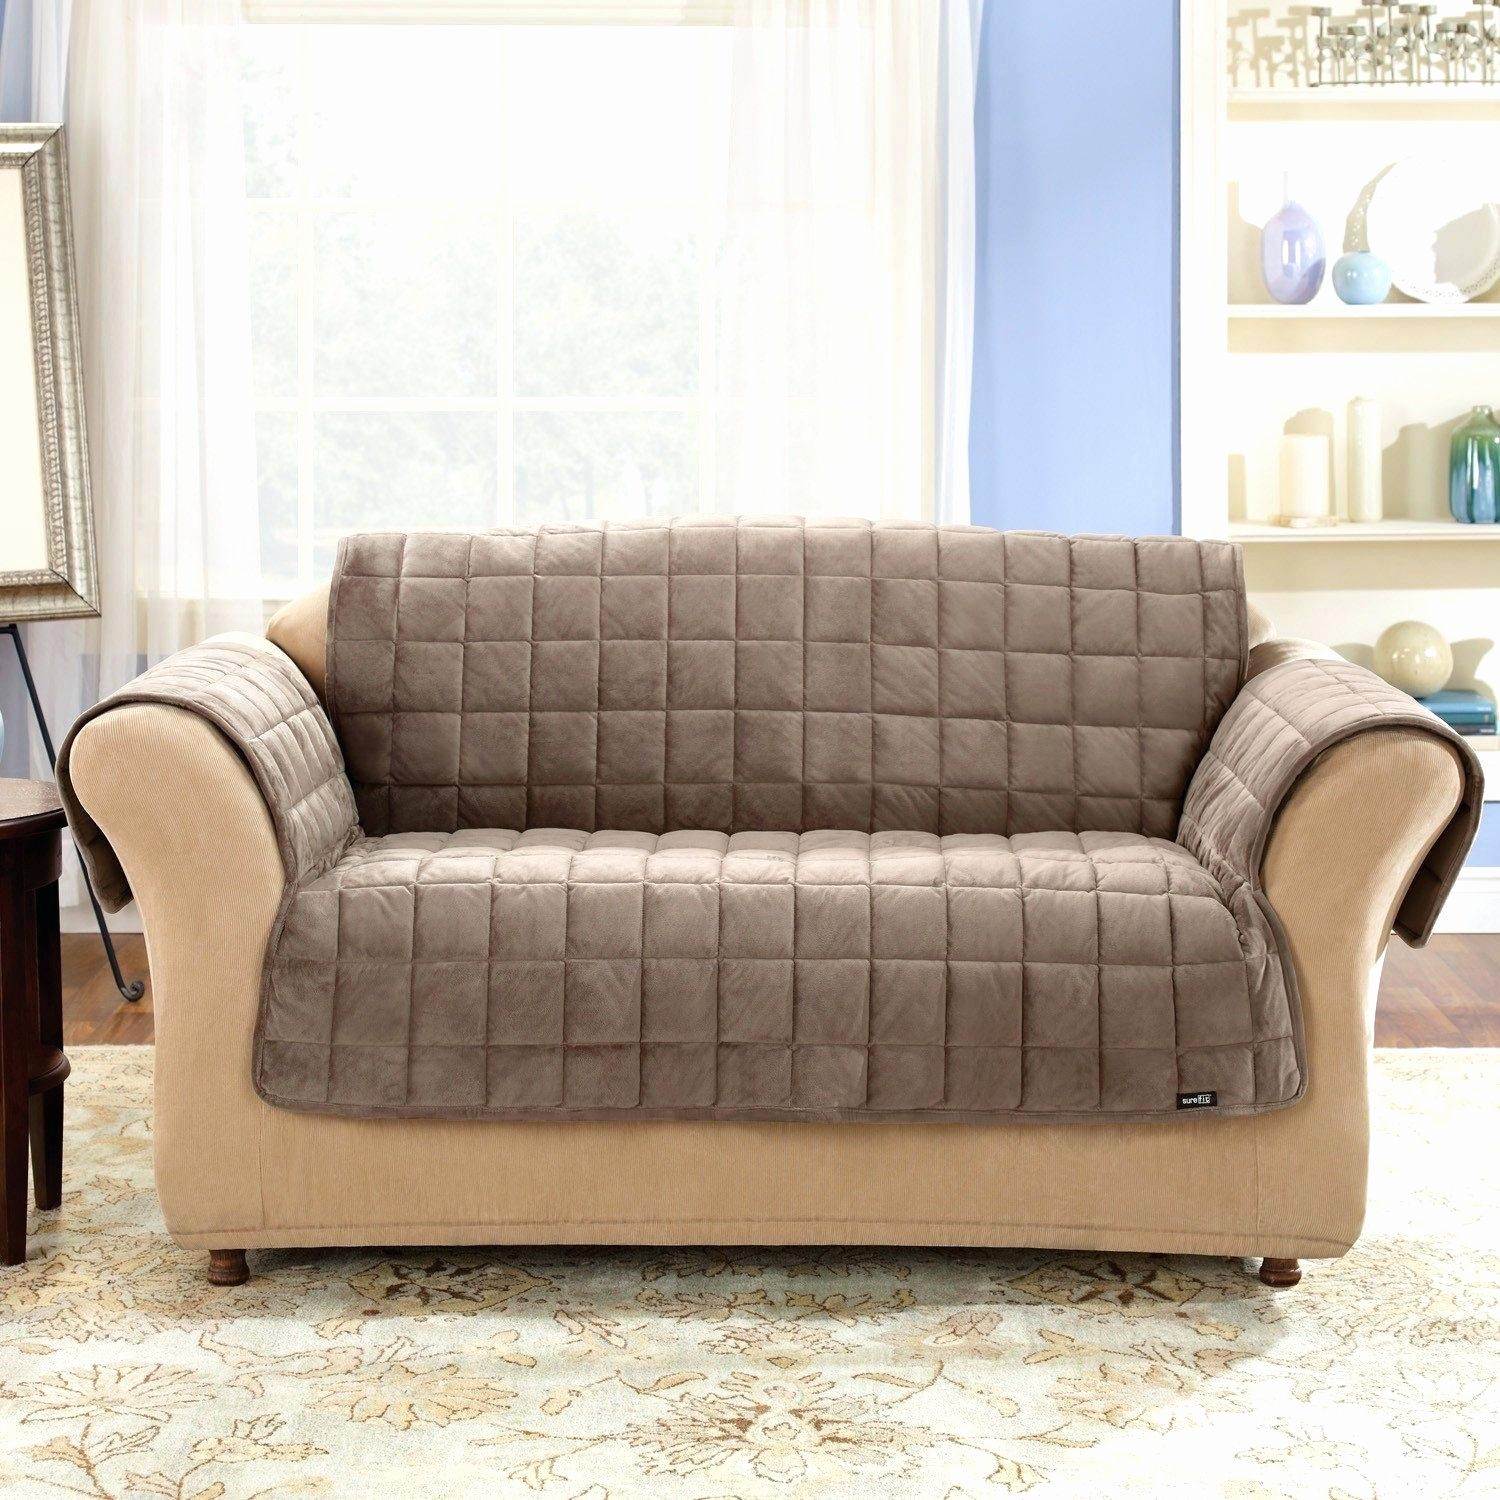 Best Sofa Covers Photograpy Best Sofa Covers Awesome Pet Sofa